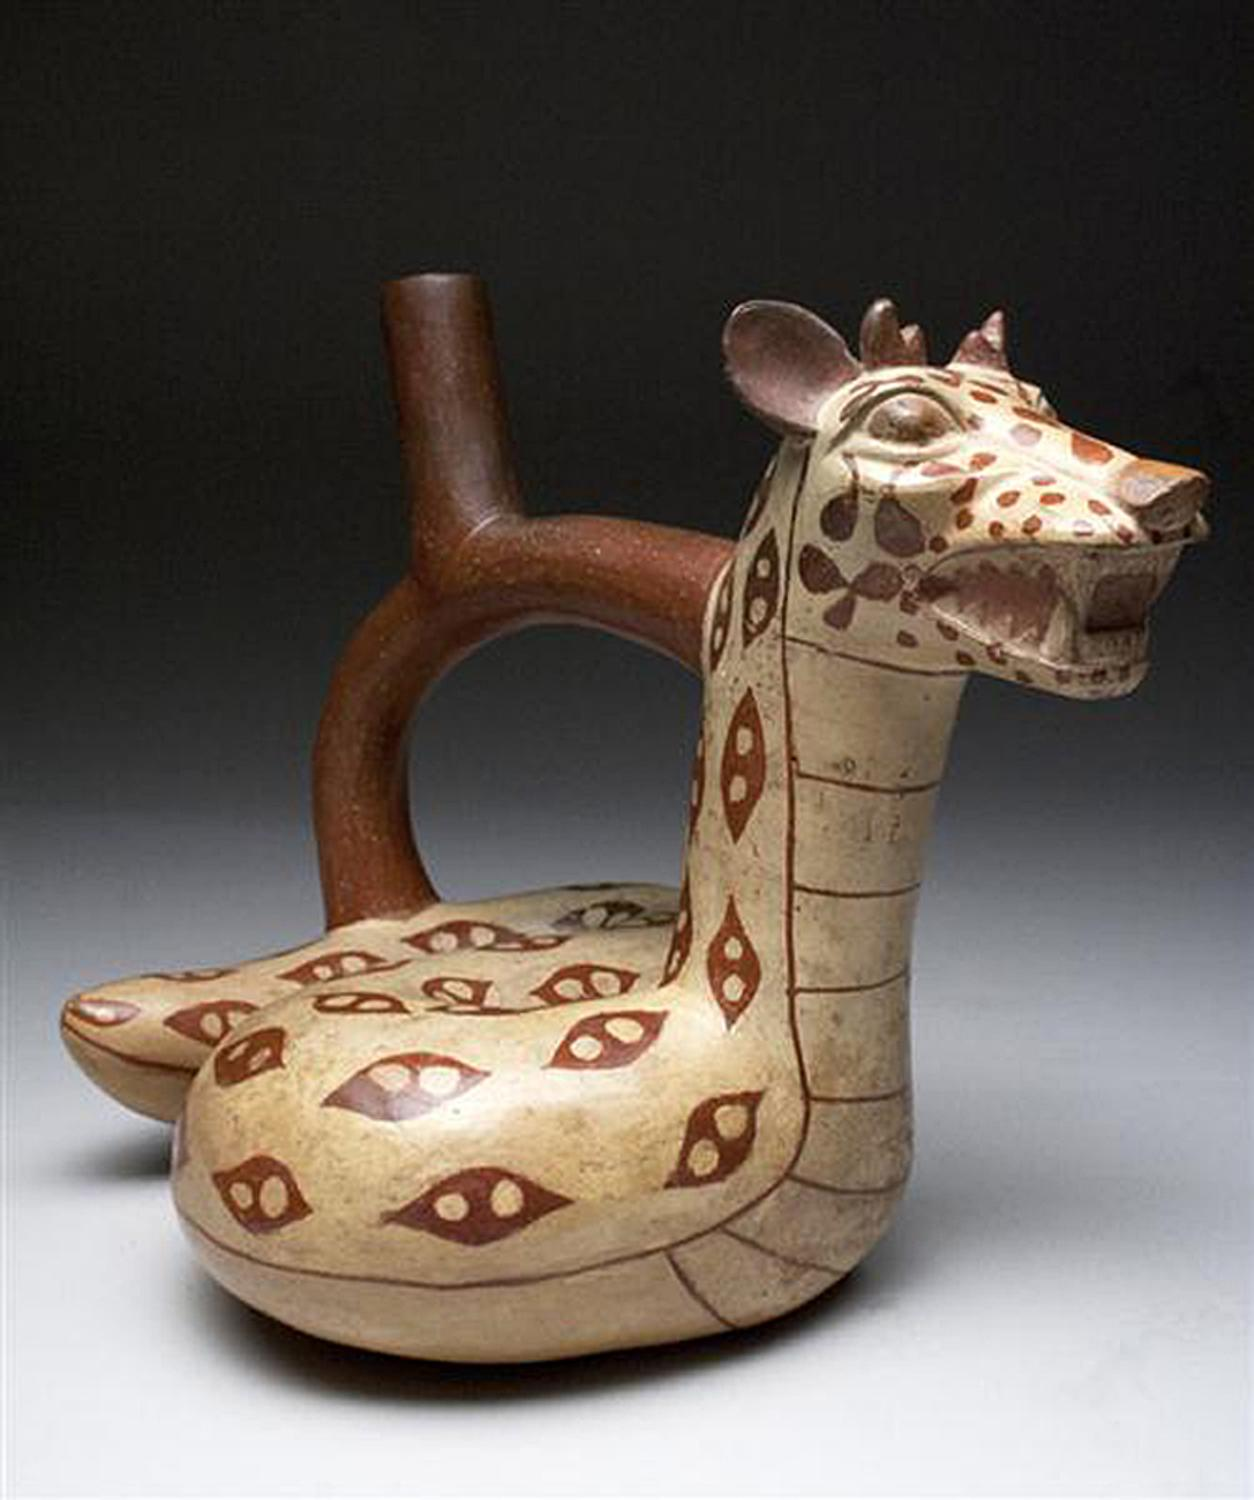 Antiquities-Saleroom to Auction Pre-Columbian Art Treasures